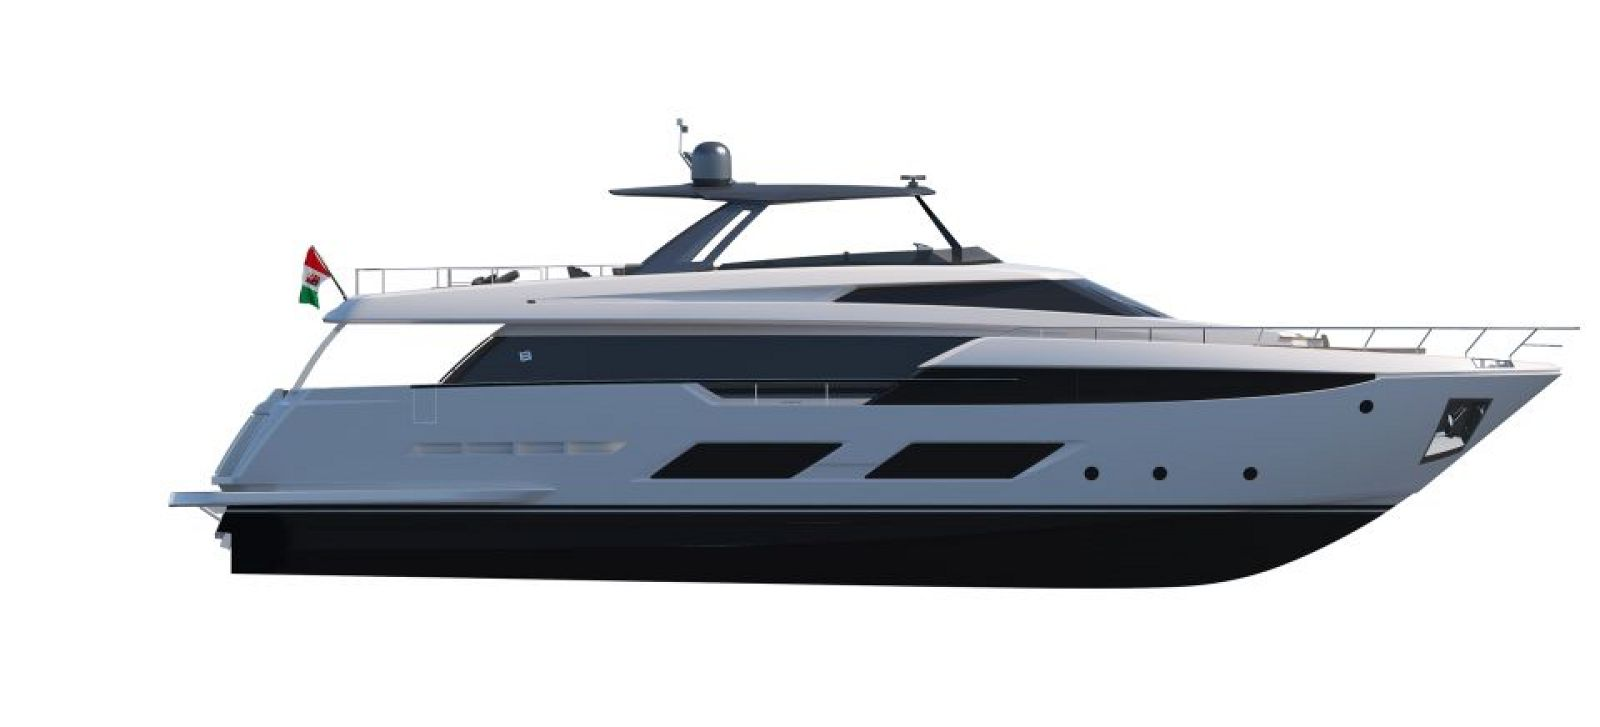 Ferretti Yachts 920 Layout - New Luxury Superyacht for Sale >